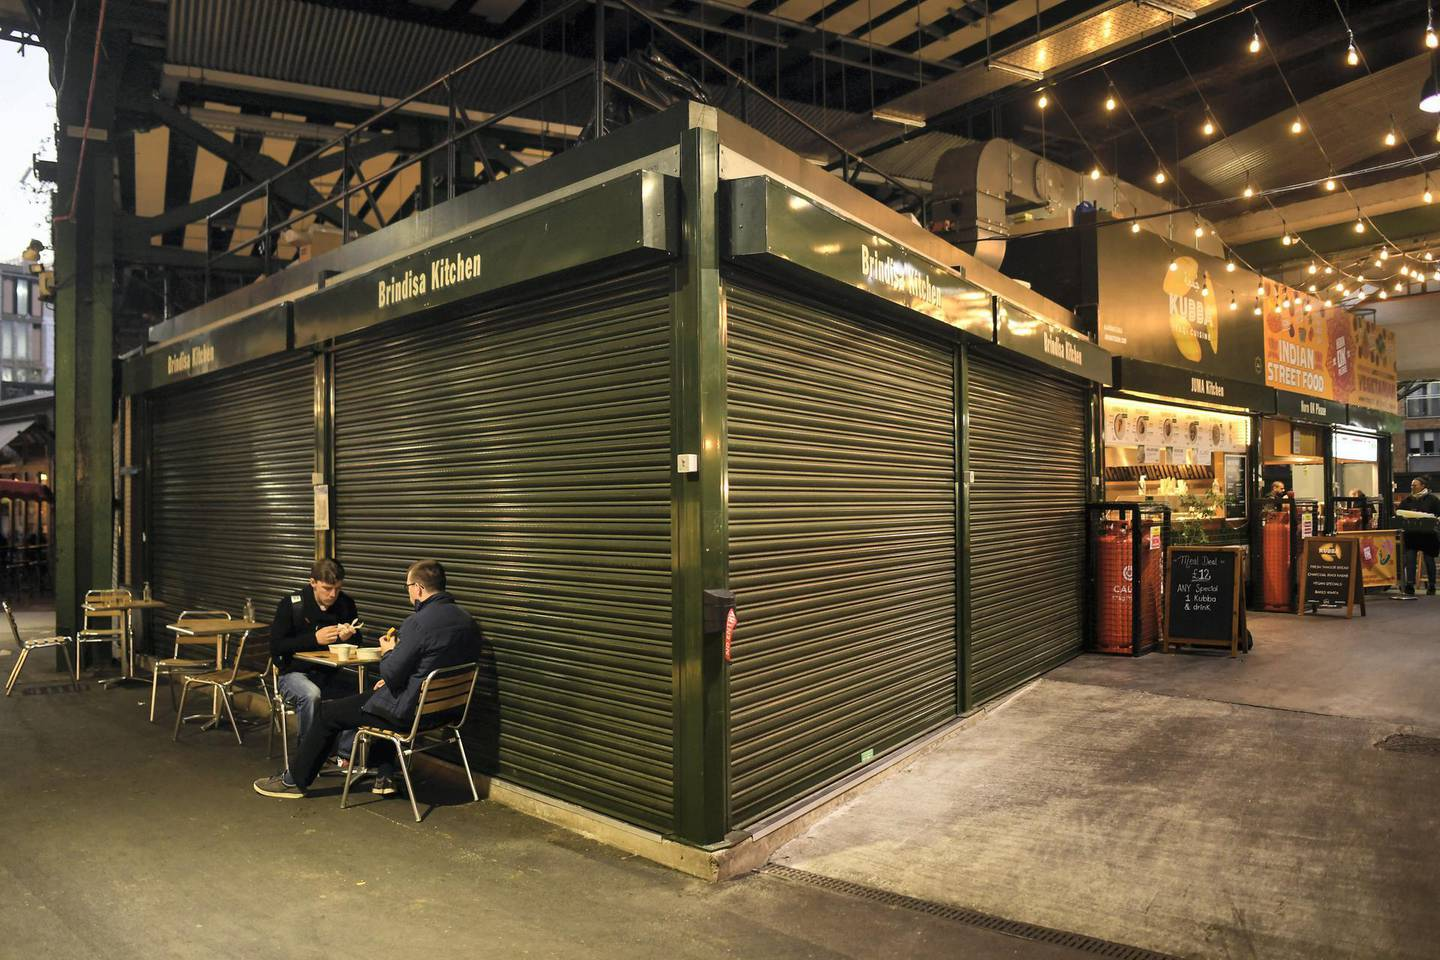 LONDON, ENGLAND - NOVEMBER 04: Two men are seen sat at a table outside a shut business in Borough Market on November 4, 2020 in London, England. Non-essential businesses, including pubs and restaurants, will be forced to close from Thursday, Nov 5, following a new national lockdown in England. (Photo by Peter Summers/Getty Images)